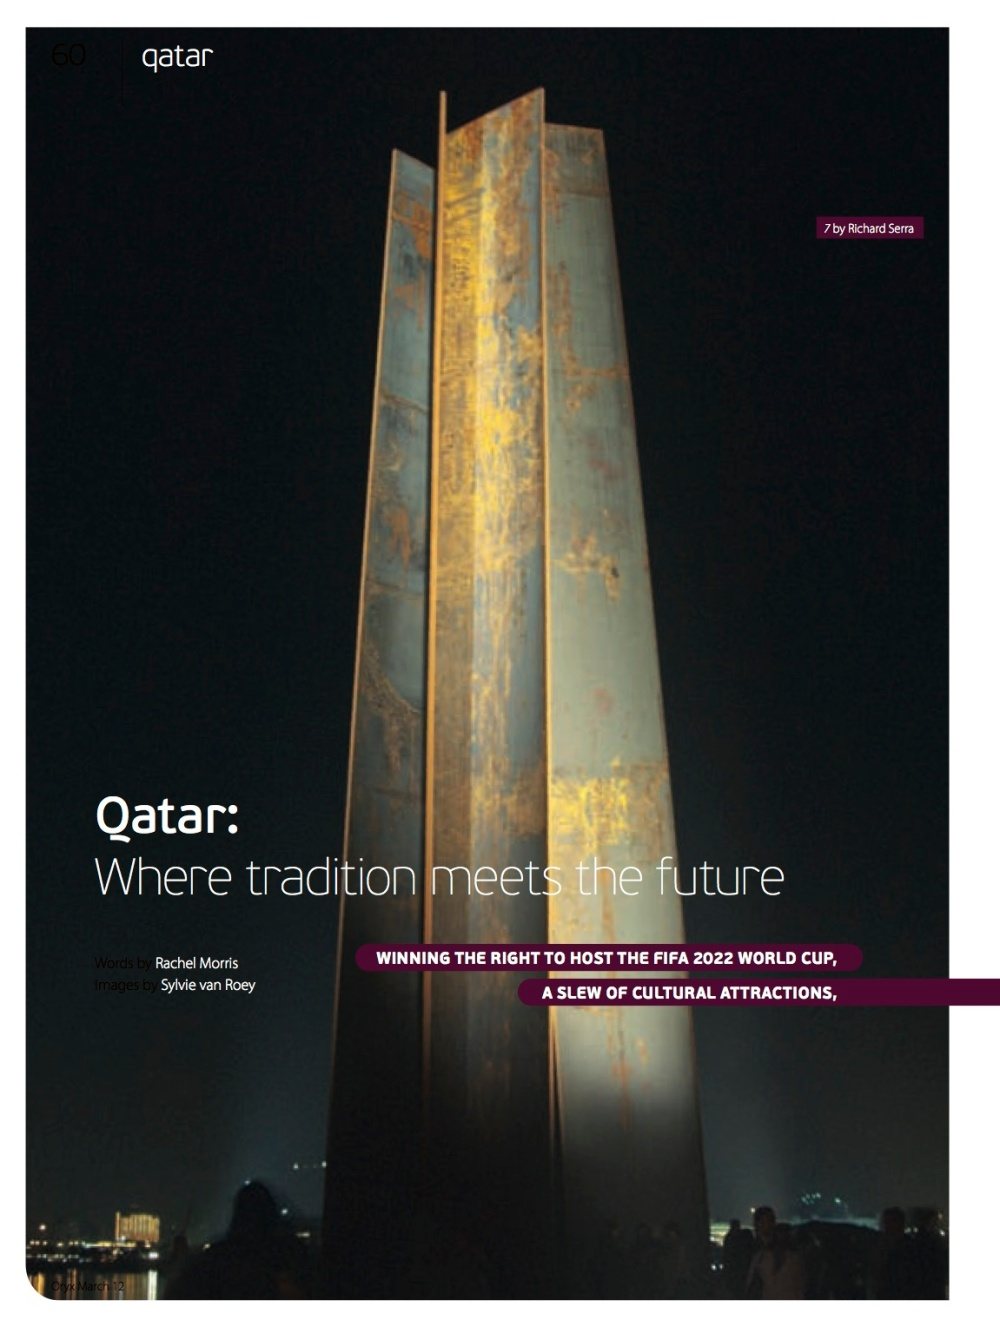 Doha, the destination